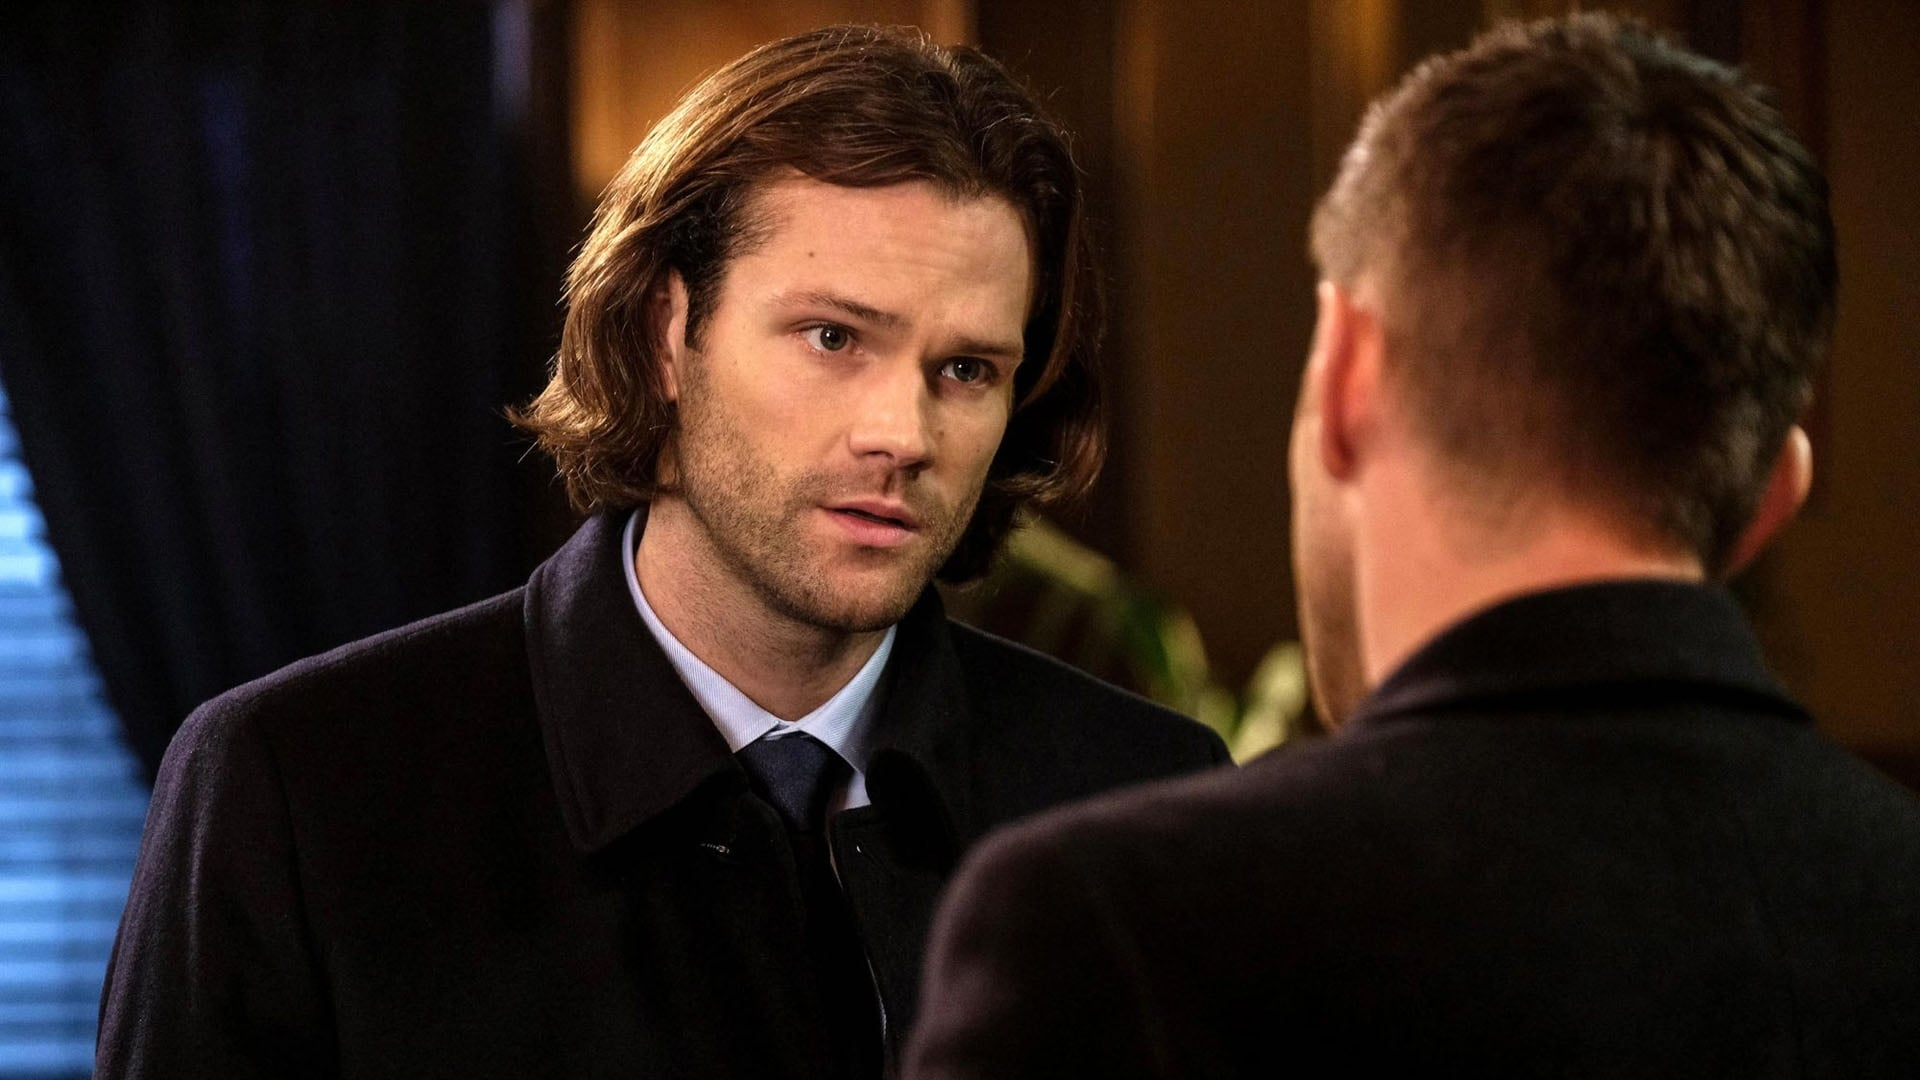 Supernatural - Season 13 Episode 15 : A Most Holy Man